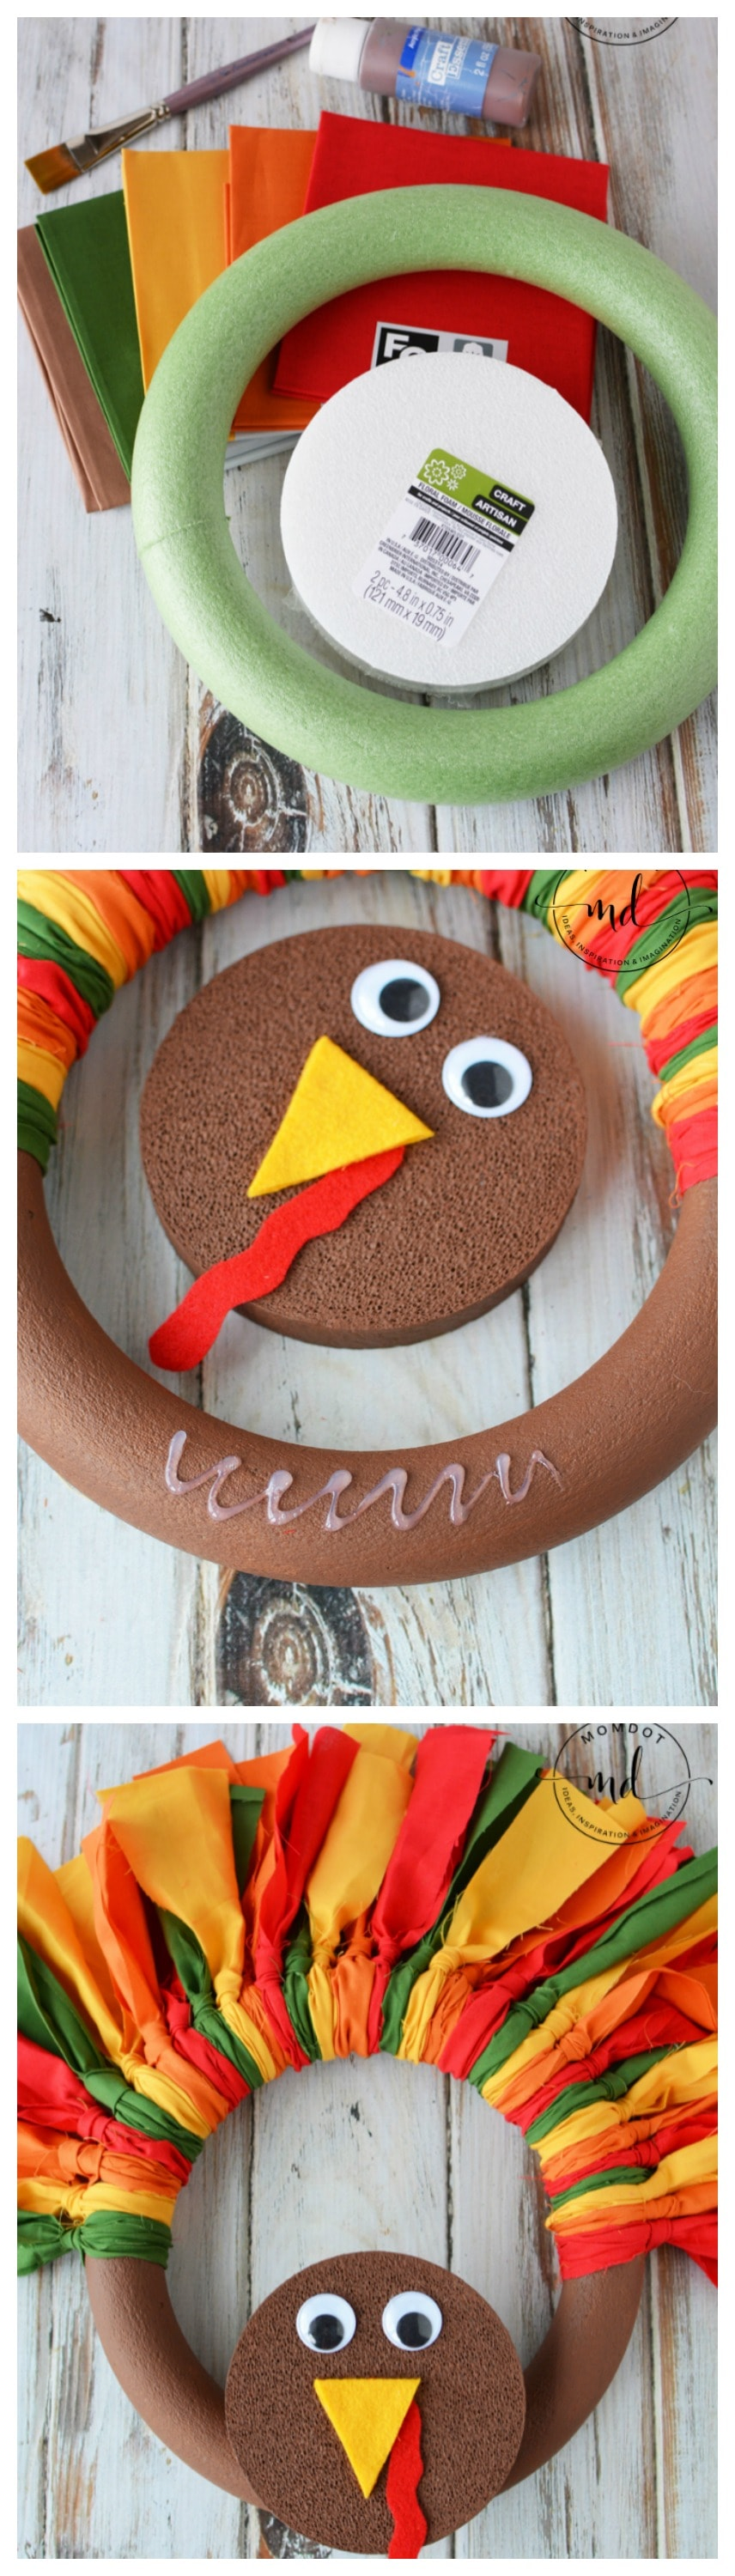 Turkey Wreath : How to make a Fabric Turkey Wreath with Slip Knots (not tulle) that is colorful and gorgeous for fall decorations, step by step tutorial